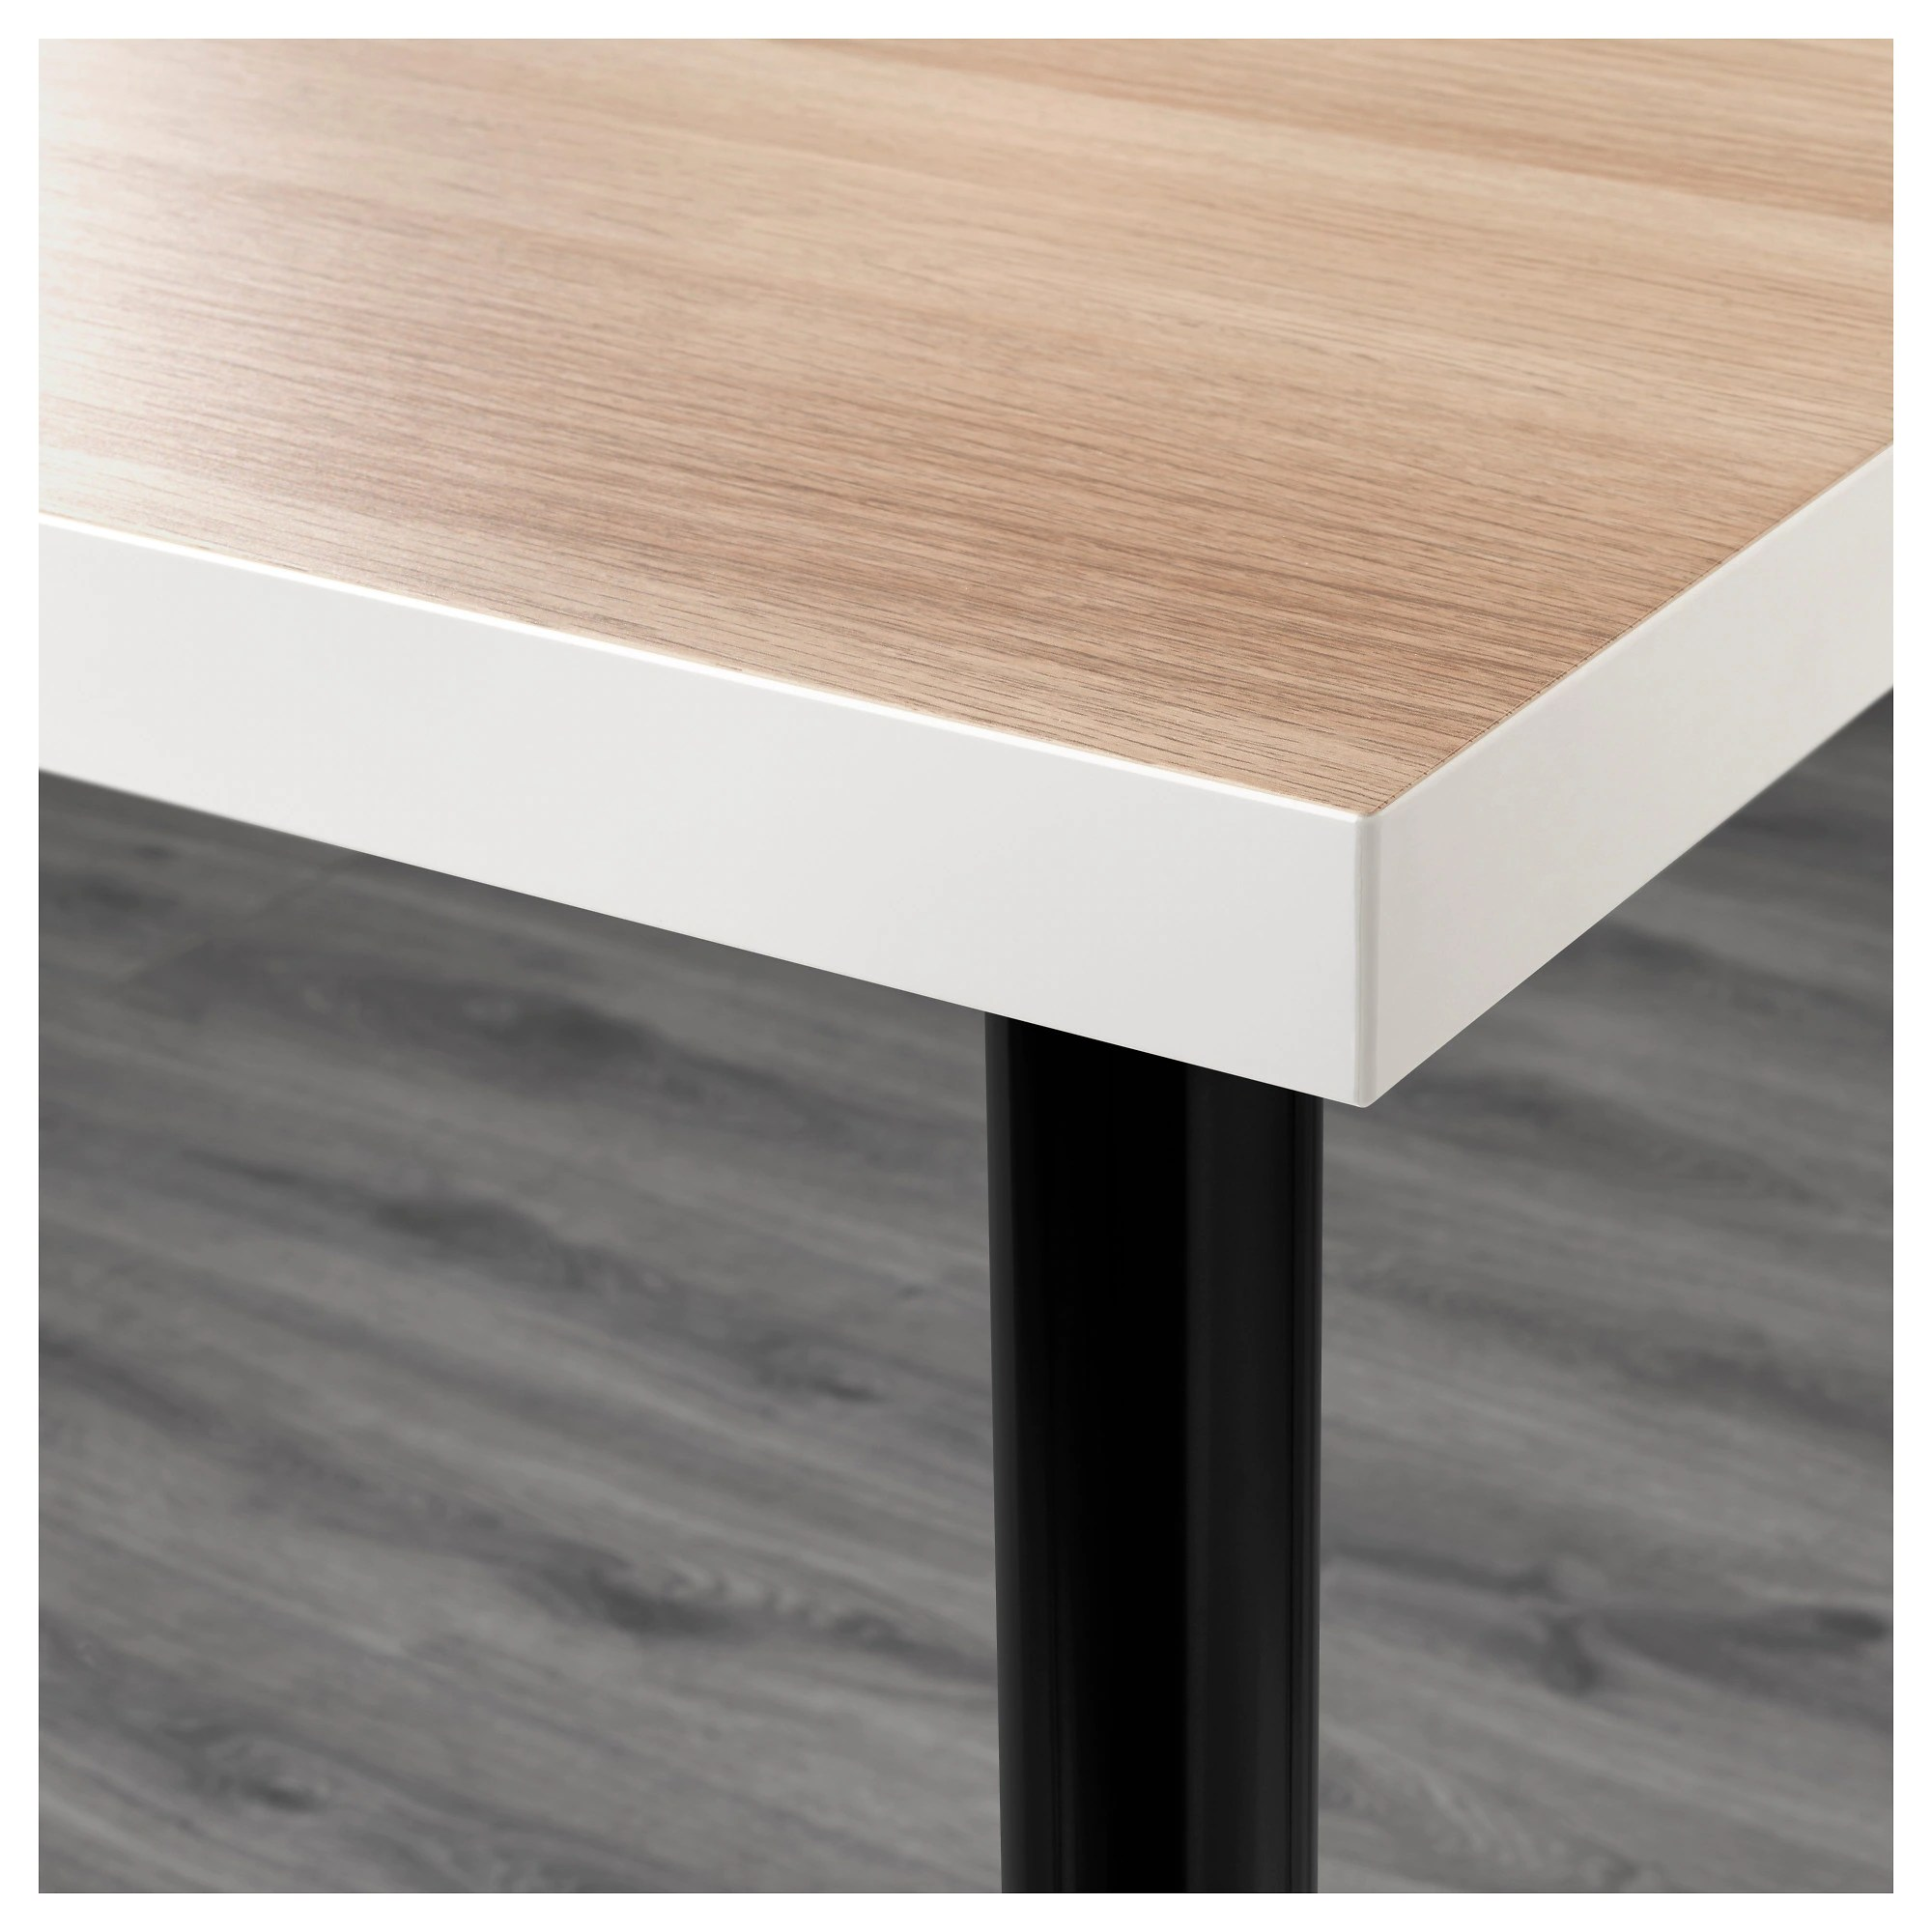 Linnmon Linnmon Adils Table Black Brown Black